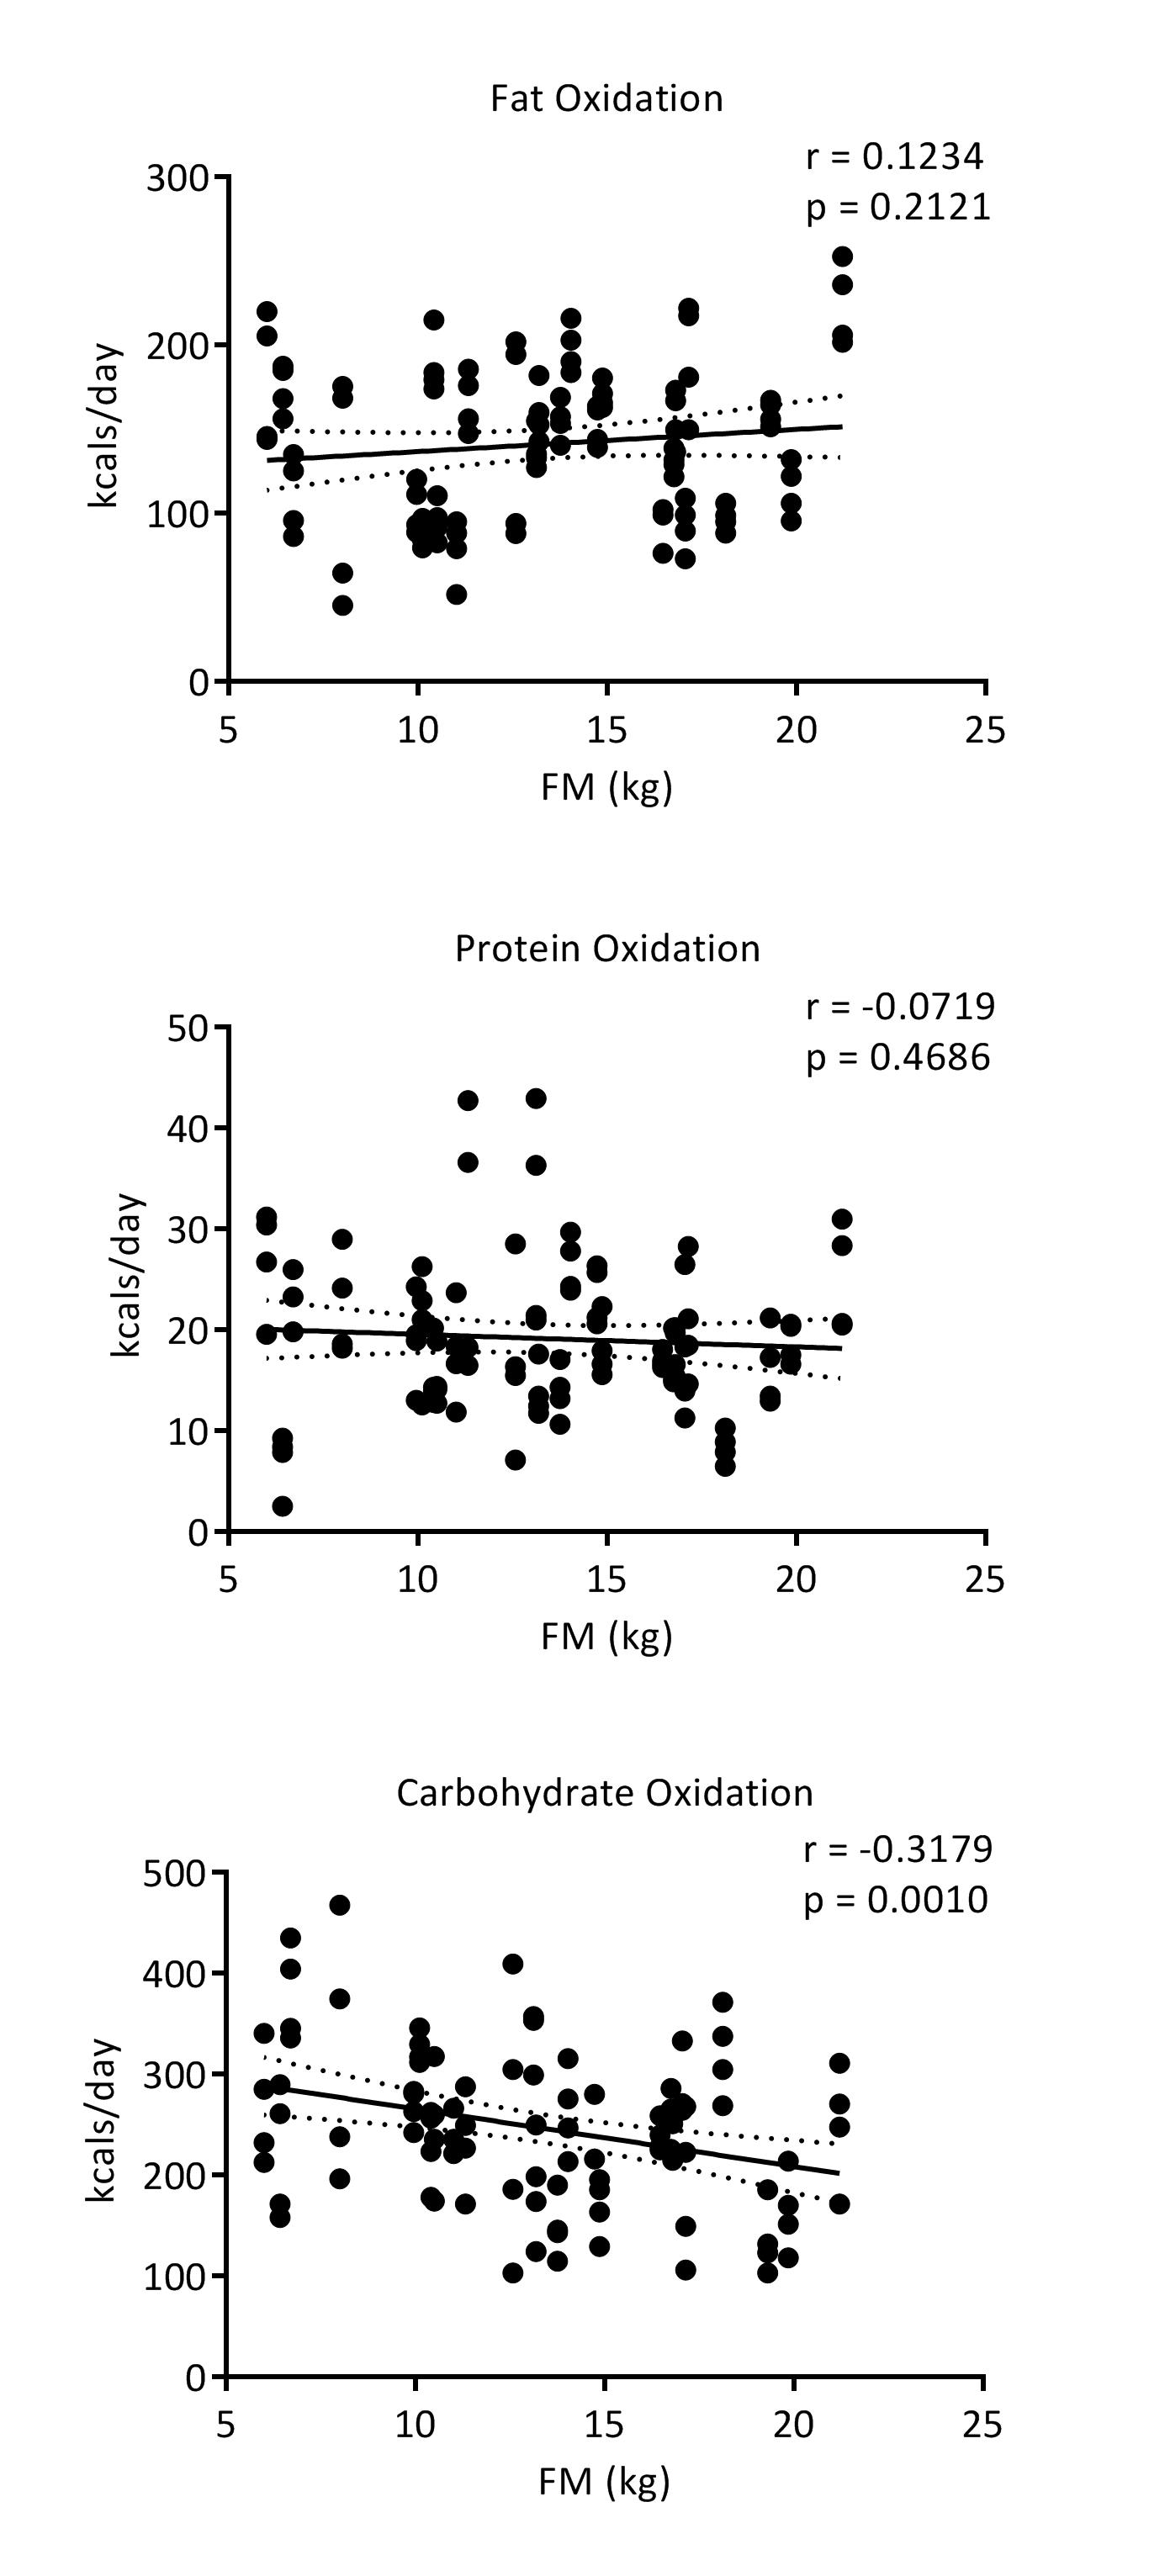 postprandial energy metabolism and substrate oxidation in response